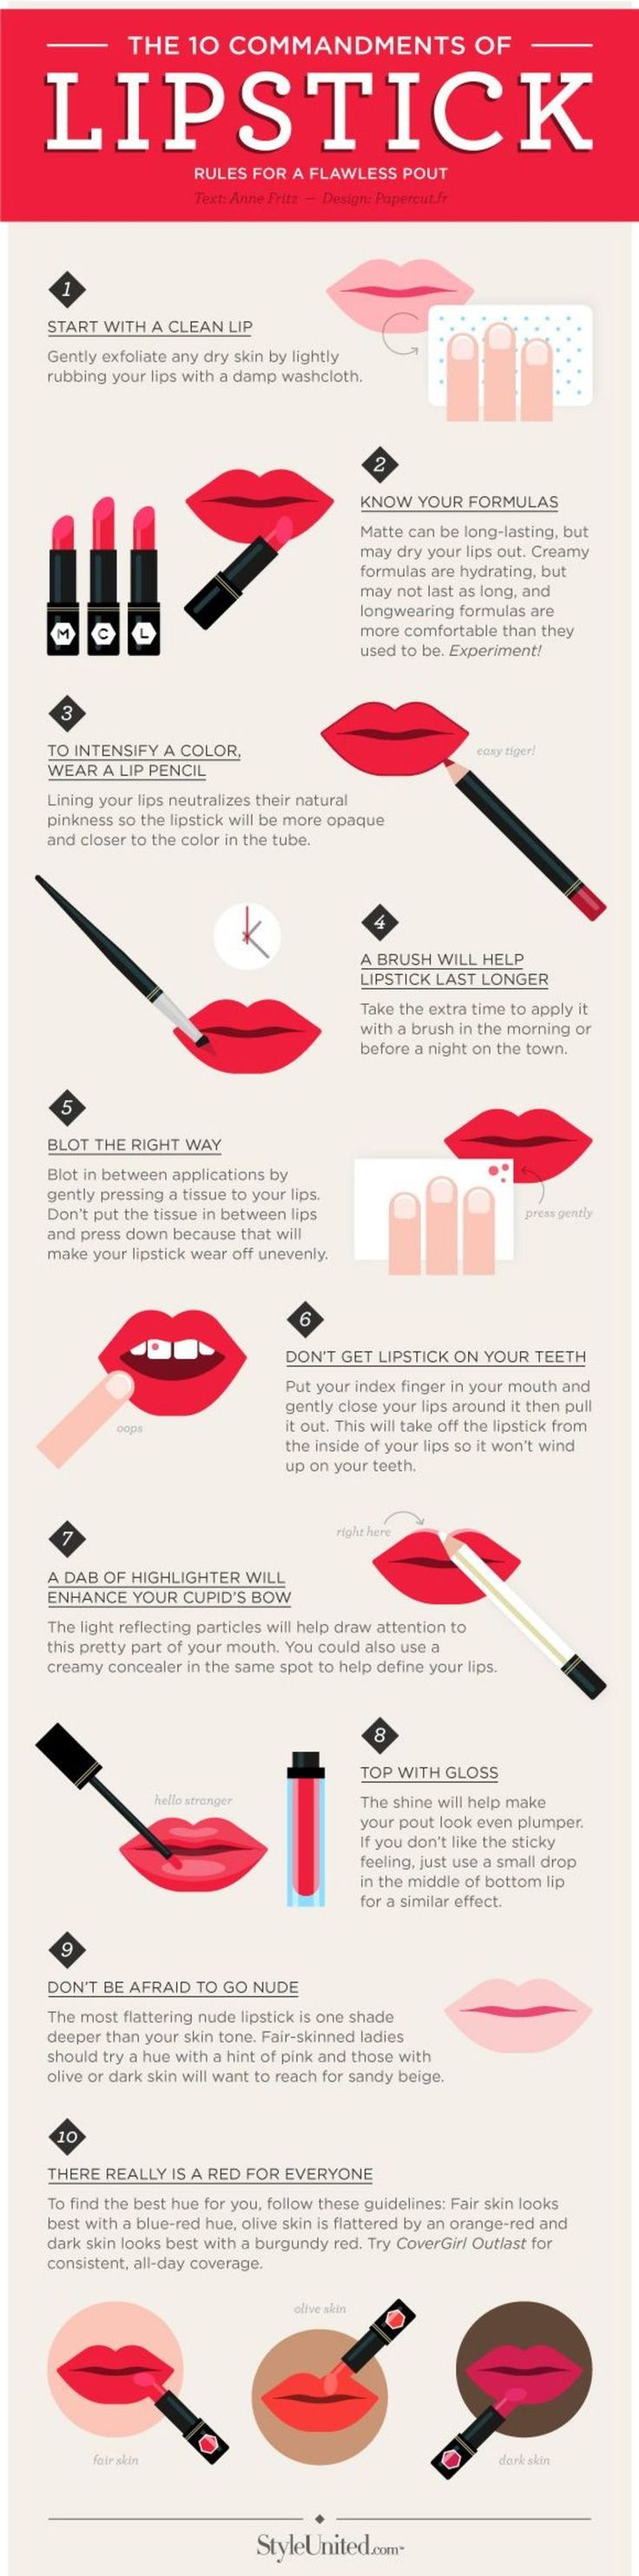 Lipstick 101: The Top 10 Rules For A Flawless Pout | Bridal Musings